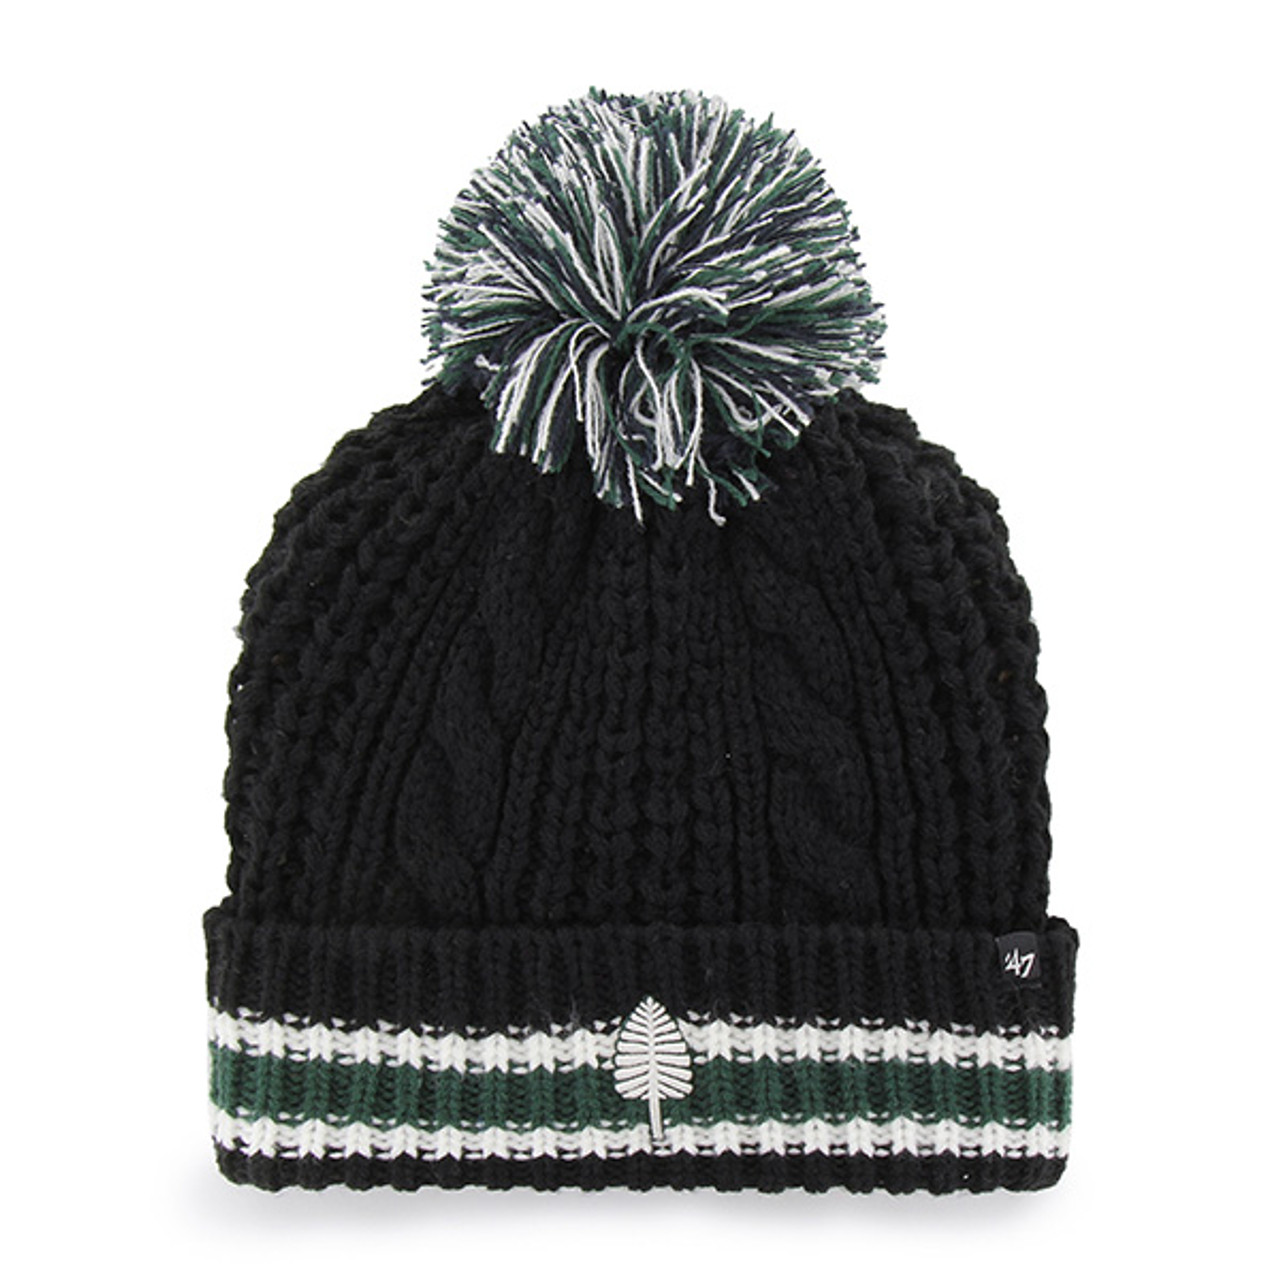 4627c7fba32 ... Pom Knit Lone Pine Hat · Black winter hat with green  Lone Pine  on brim  with a green stripe and